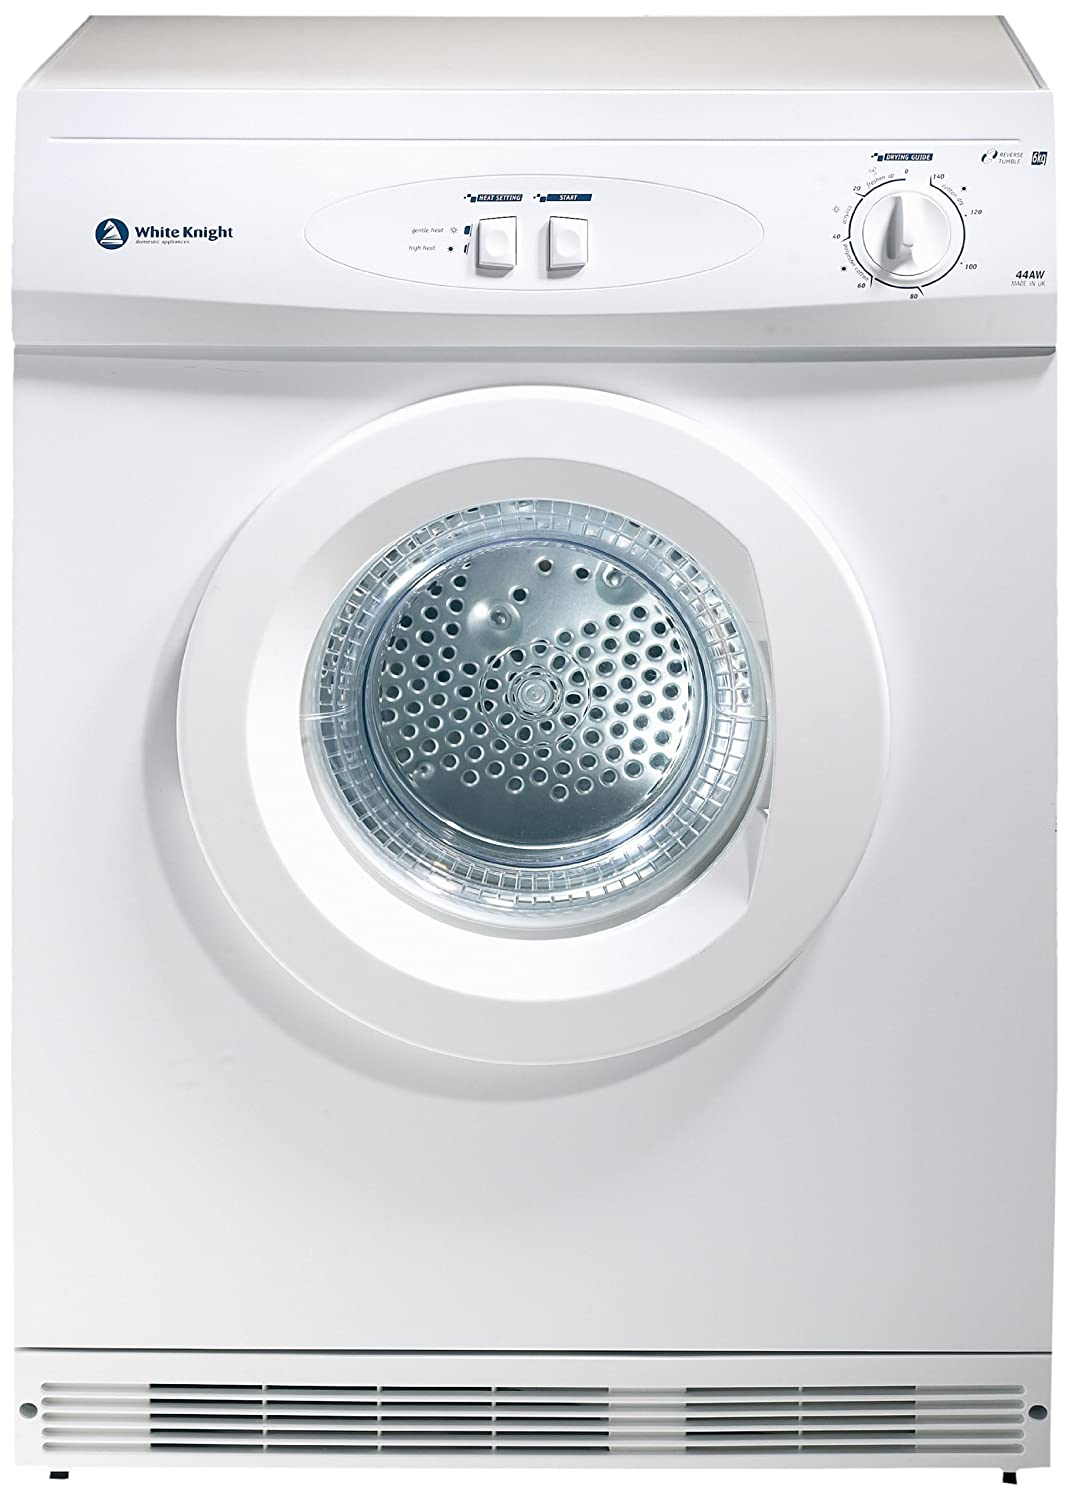 white knight 44aw tumble dryer manual user guide manual that easy rh wowomg co white knight 767c instruction manual